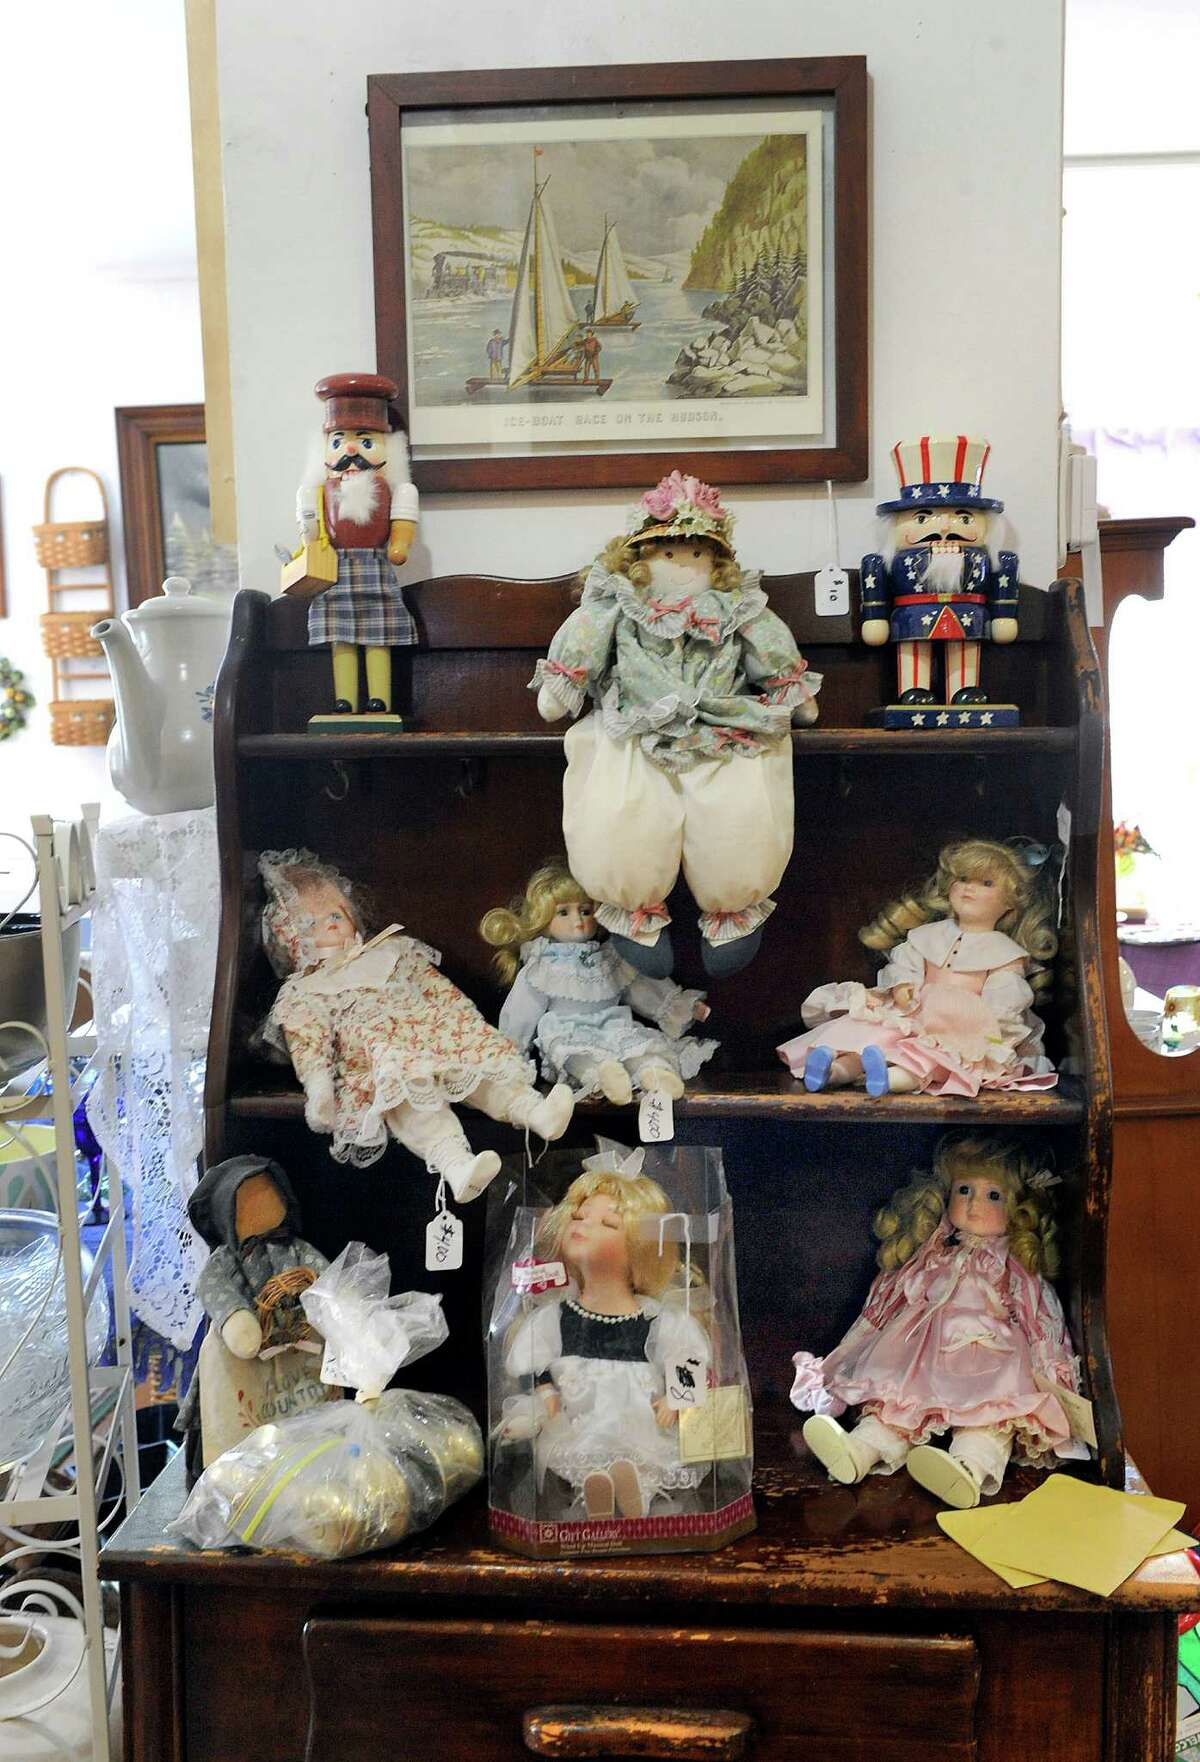 Dolls are among the many items avaiable at Healing The Children Thrift Shop at 27 East Street in New Milford, Thursday, April 14, 2016. The store is closing Saturday.